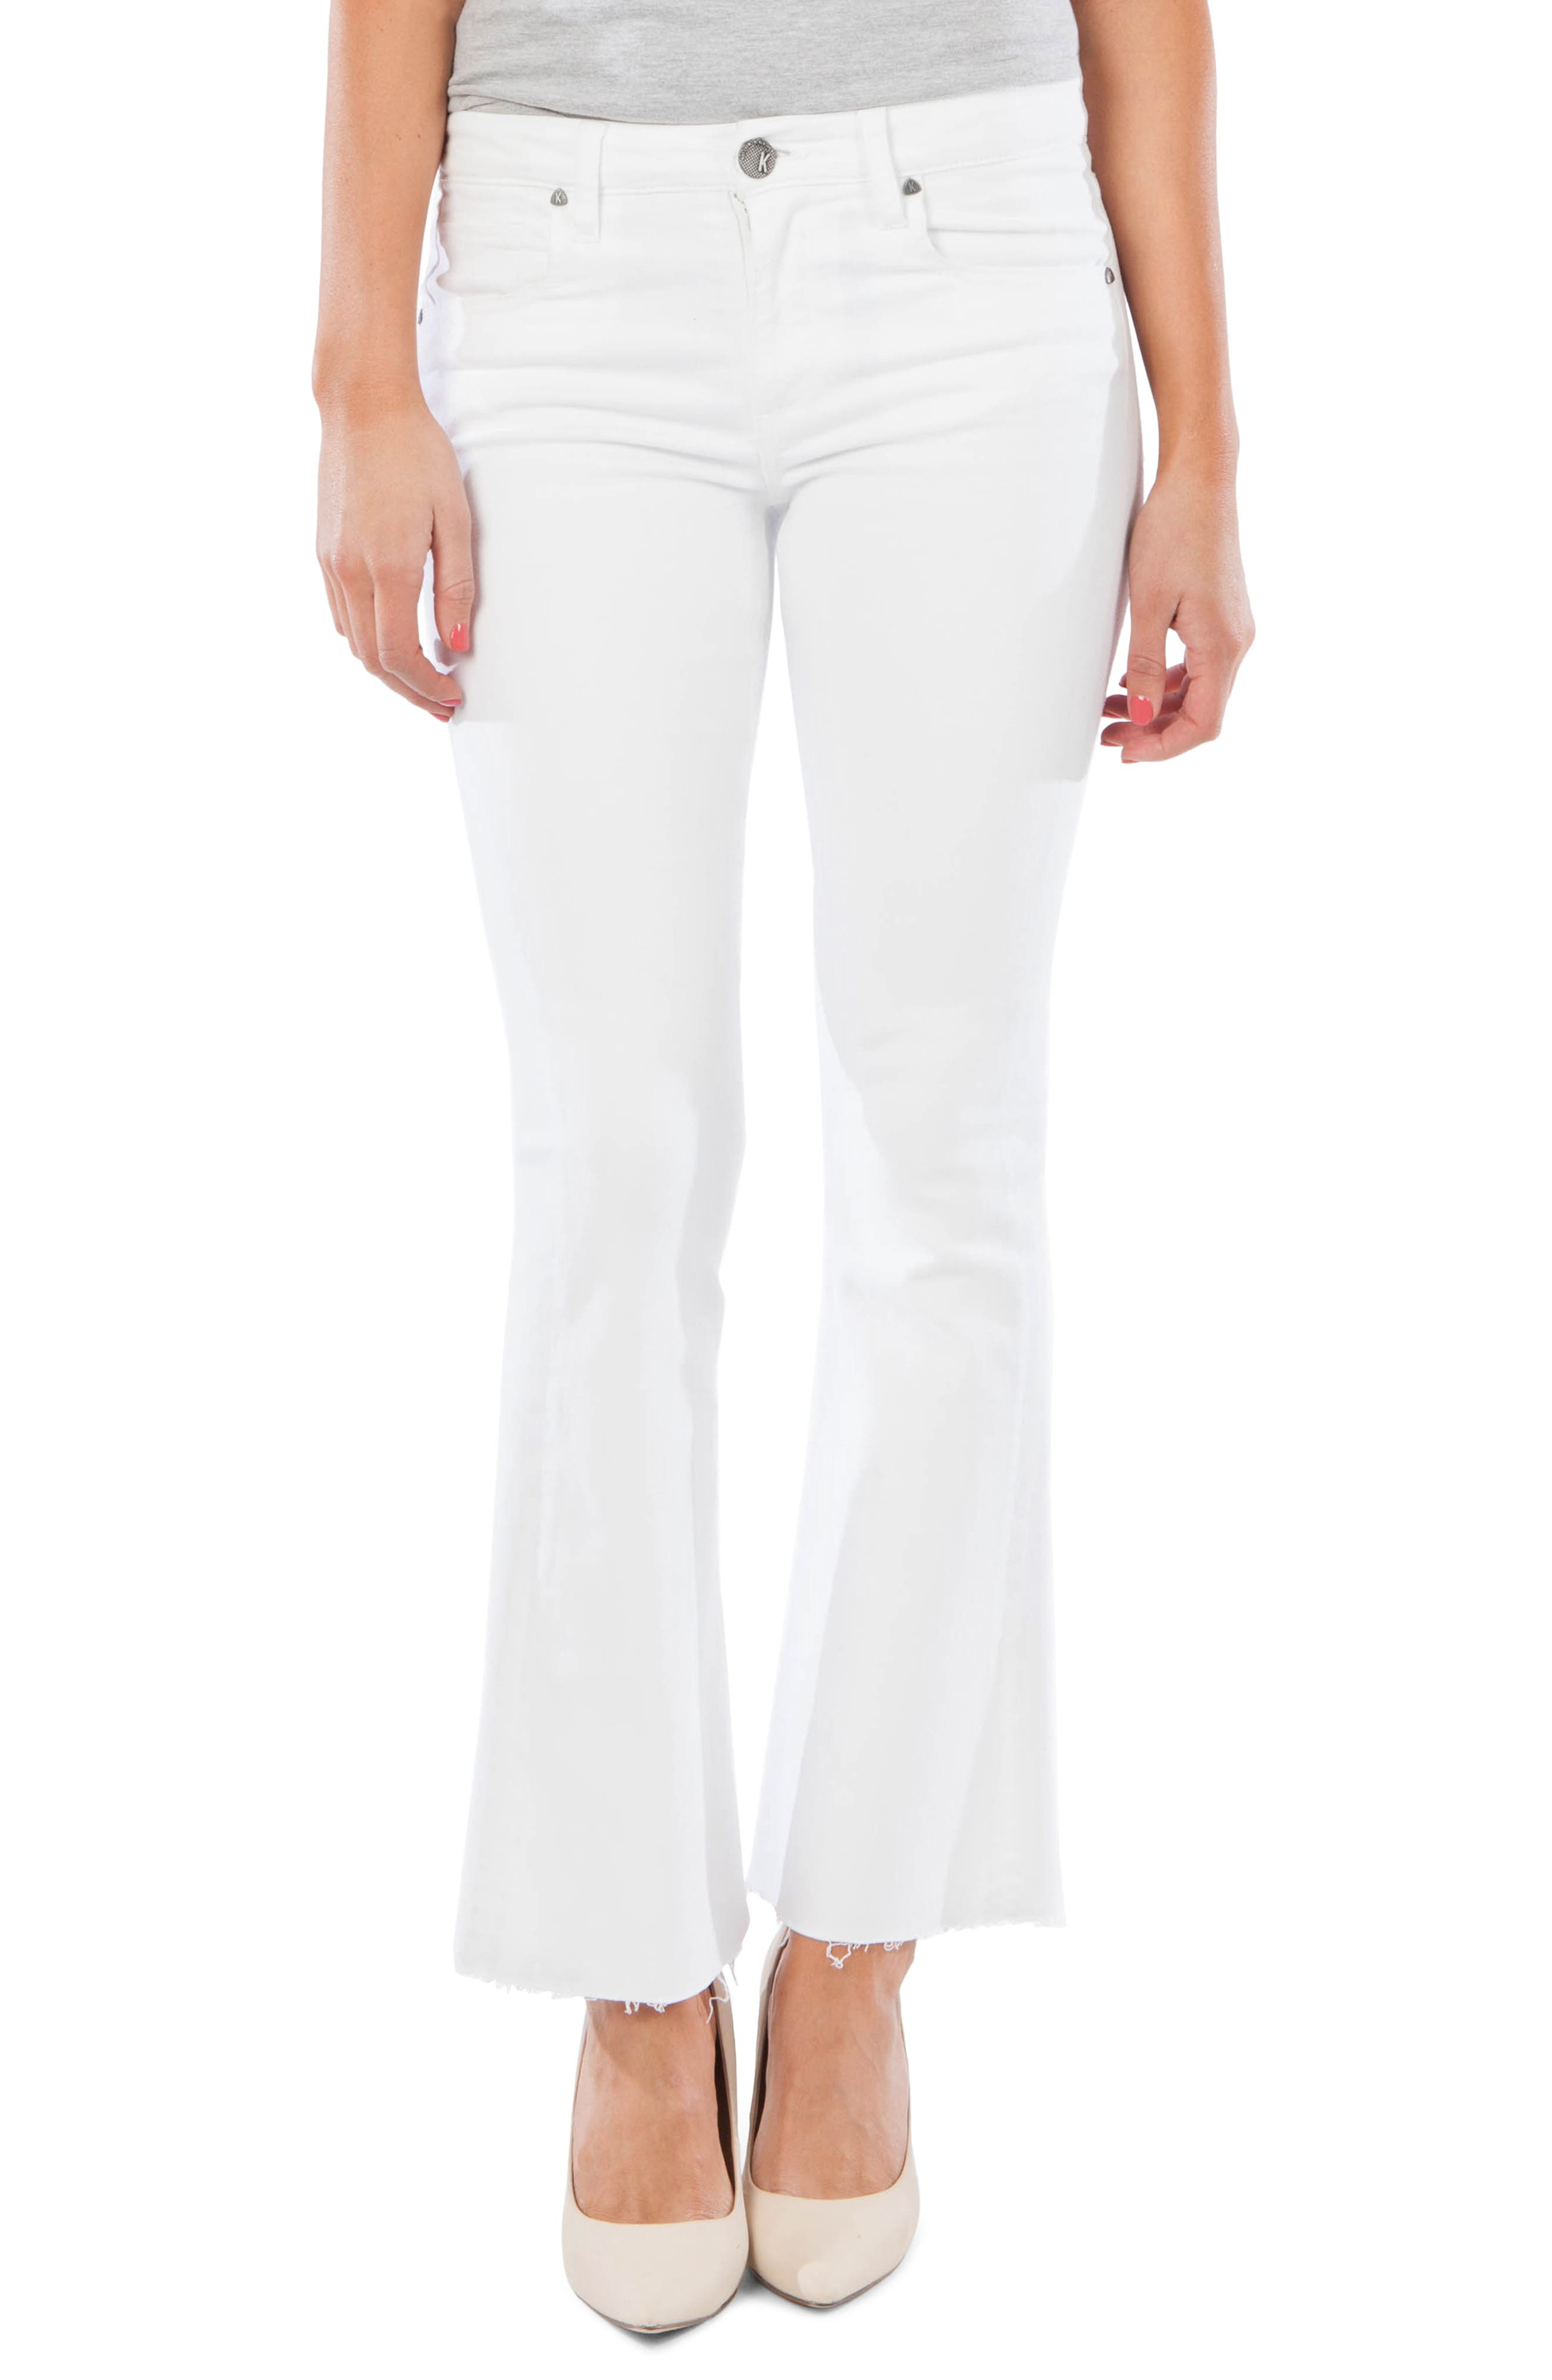 Brighten any ensemble with the vintage vibe of optic-white flared jeans cut from soft denim and finished with trendy frayed hems. Style Name: Kut From The Kloth Stella Fray Hem Flare Jeans (Optic White). Style Number: 5797259. Available in stores.